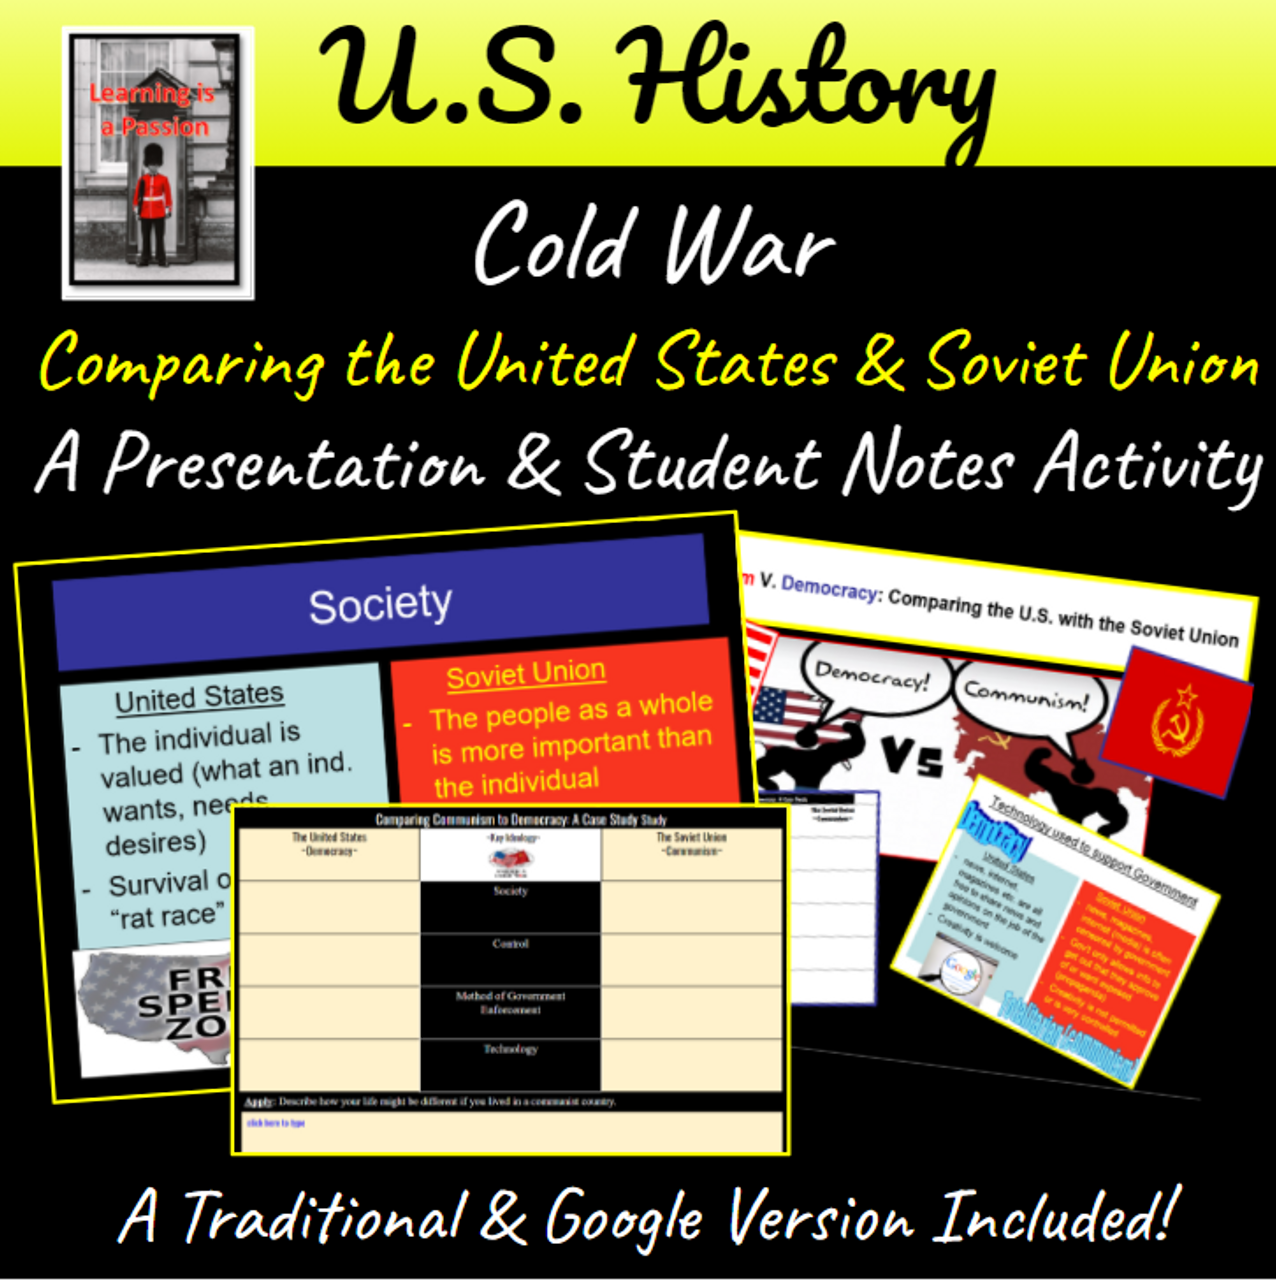 Cold War: Comparing the U.S. with the Soviet Union | Distance Learning